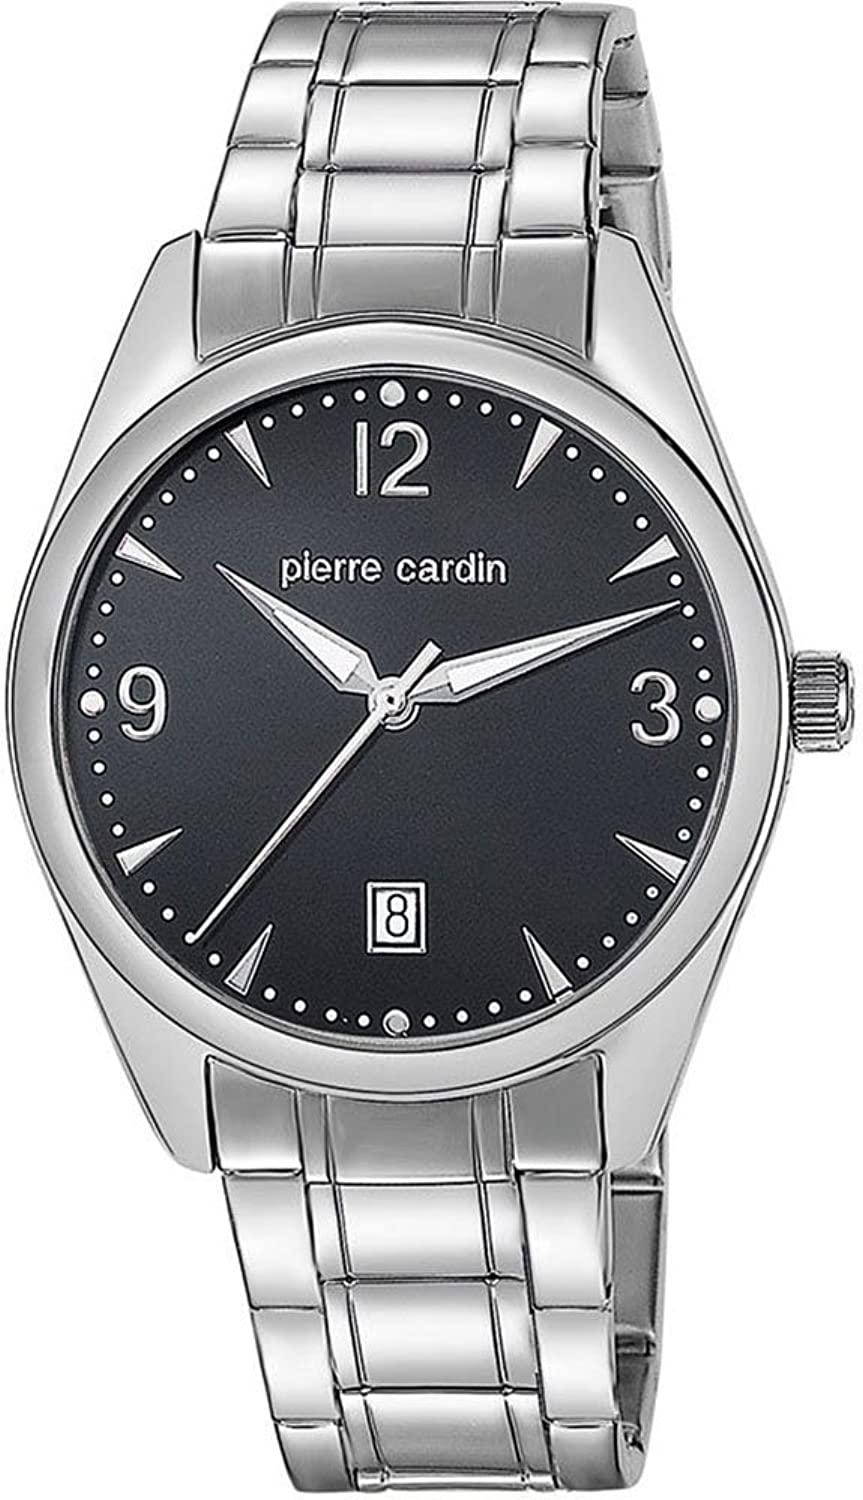 Pierre Cardin Herren-Armbanduhr Special Collection Analog Quarz Edelstahl PC104741S01